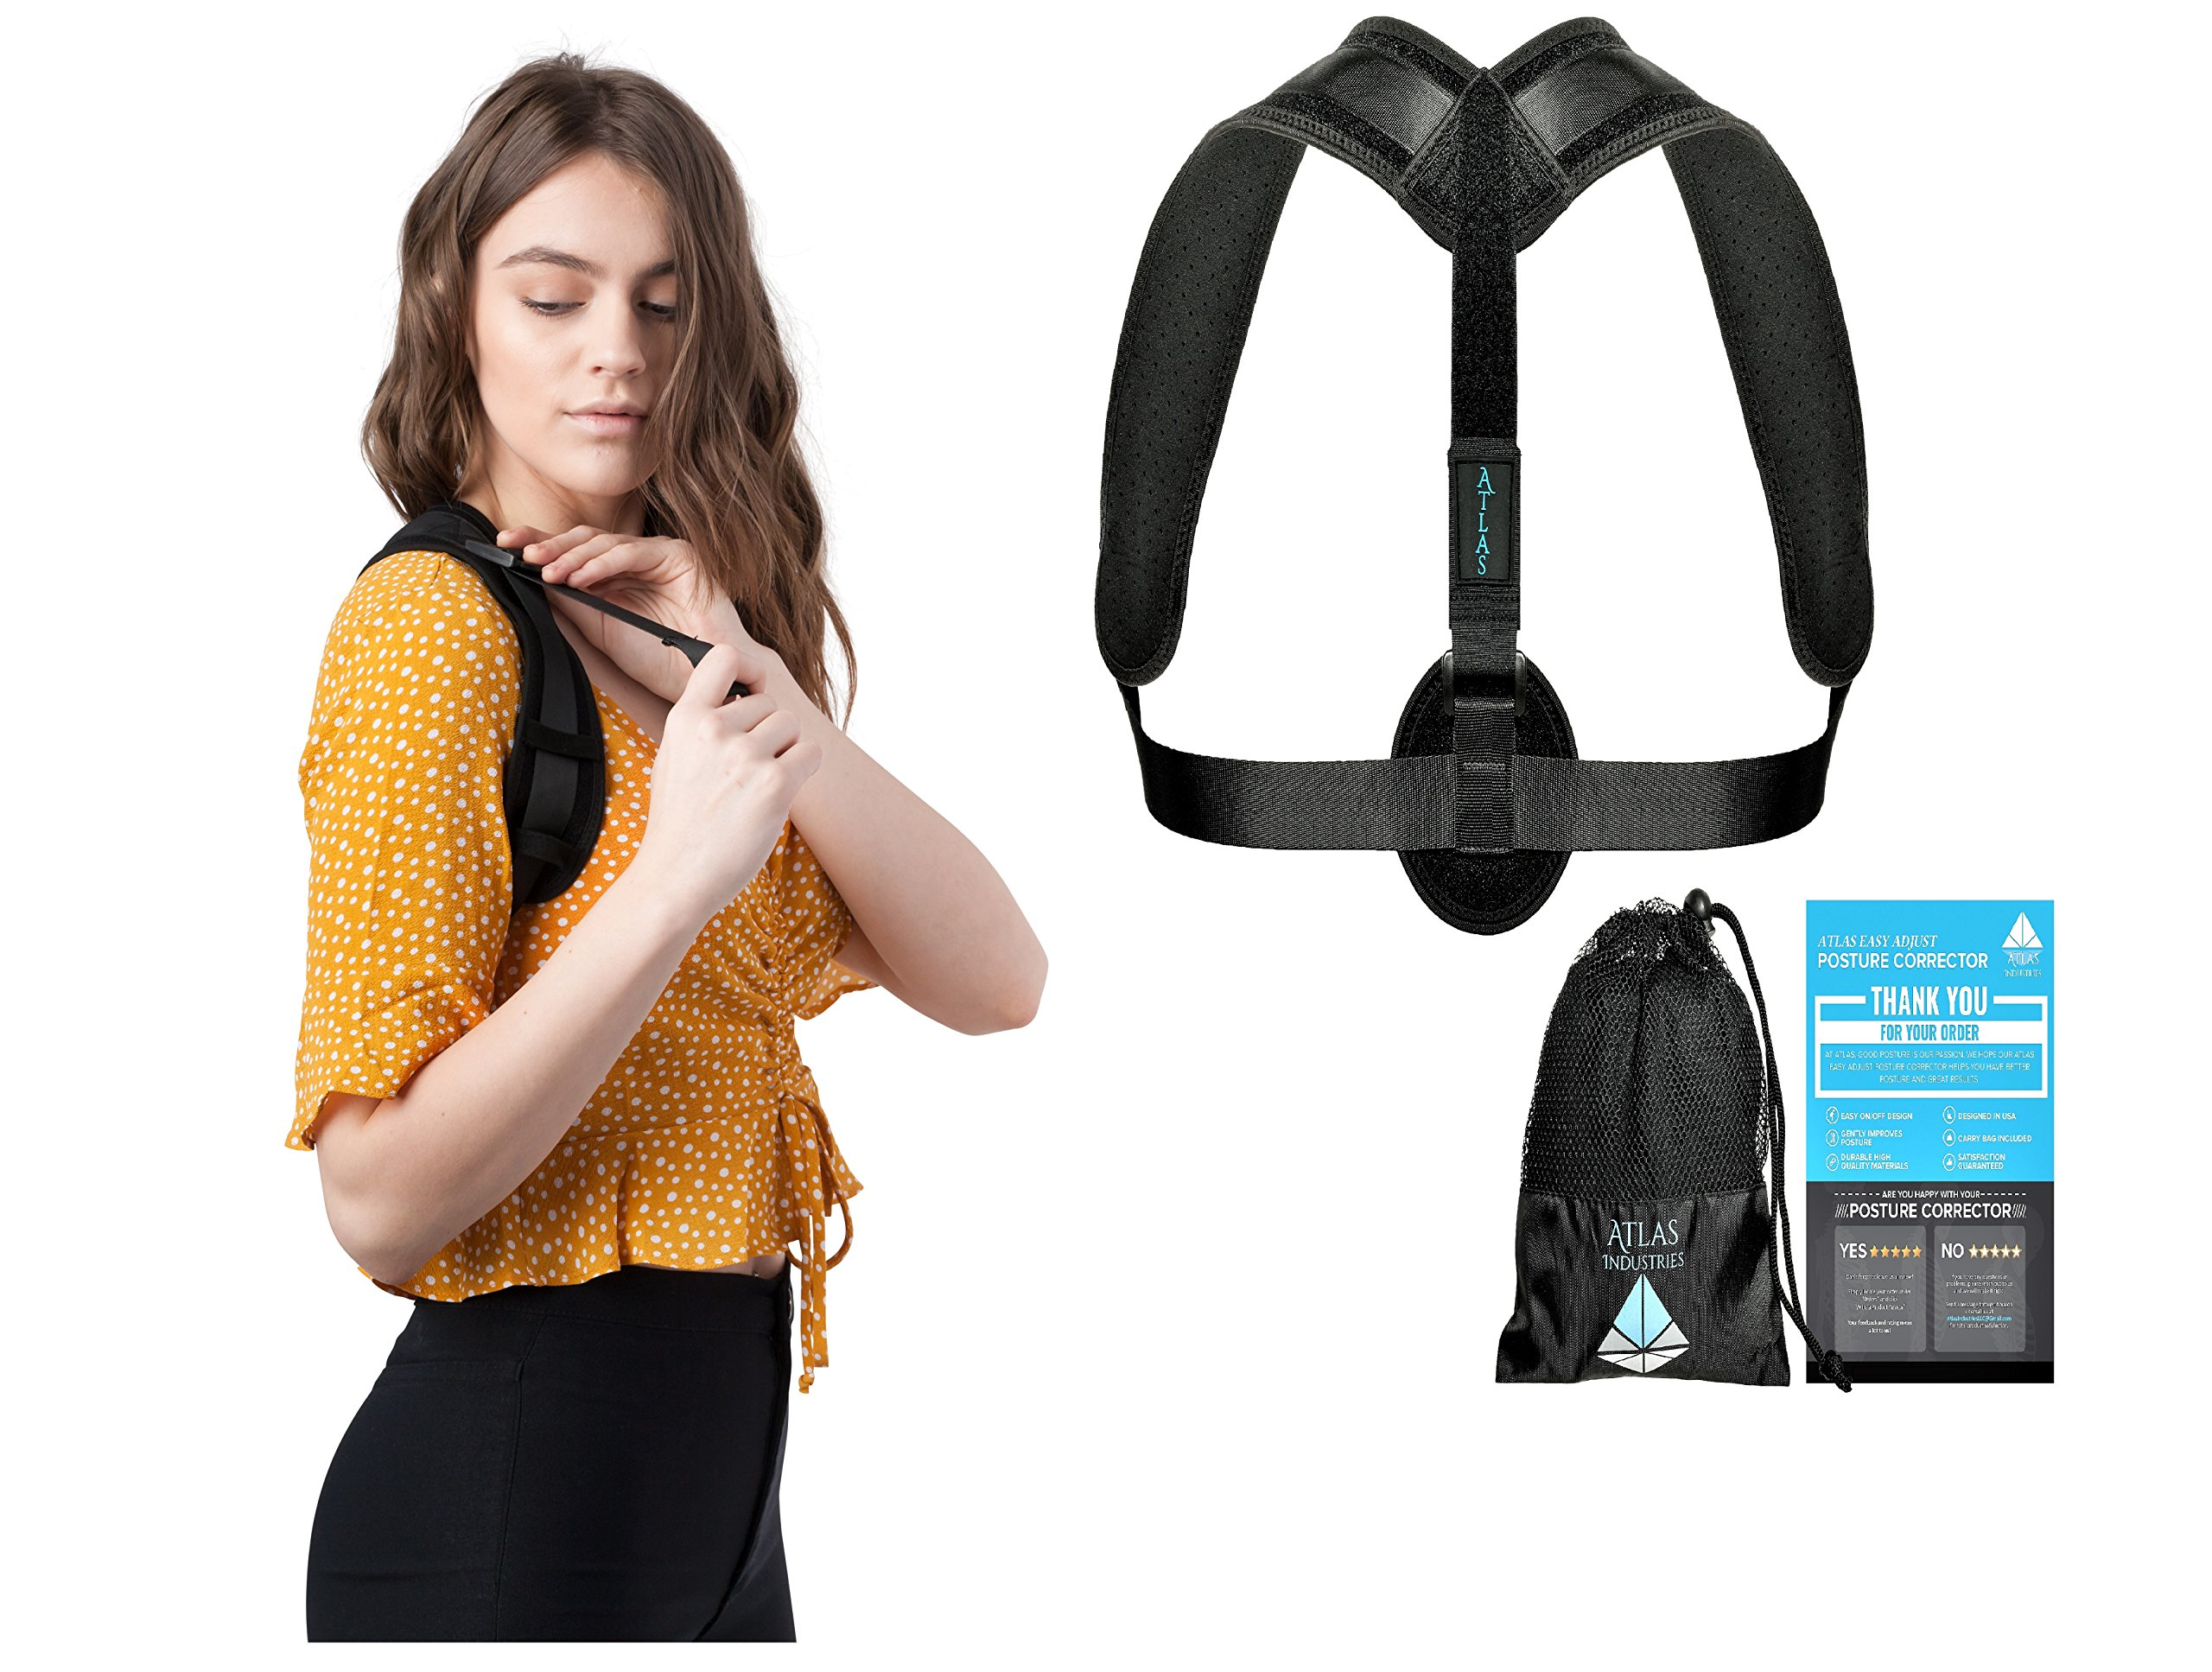 Comfortable Posture Corrector For Women or Men by Atlas | The Best Posture Brace For Women And Men | Easy To Wear | One Size Fits Most - Up To 50'' Chest | Carry Bag Included | Designed In USA